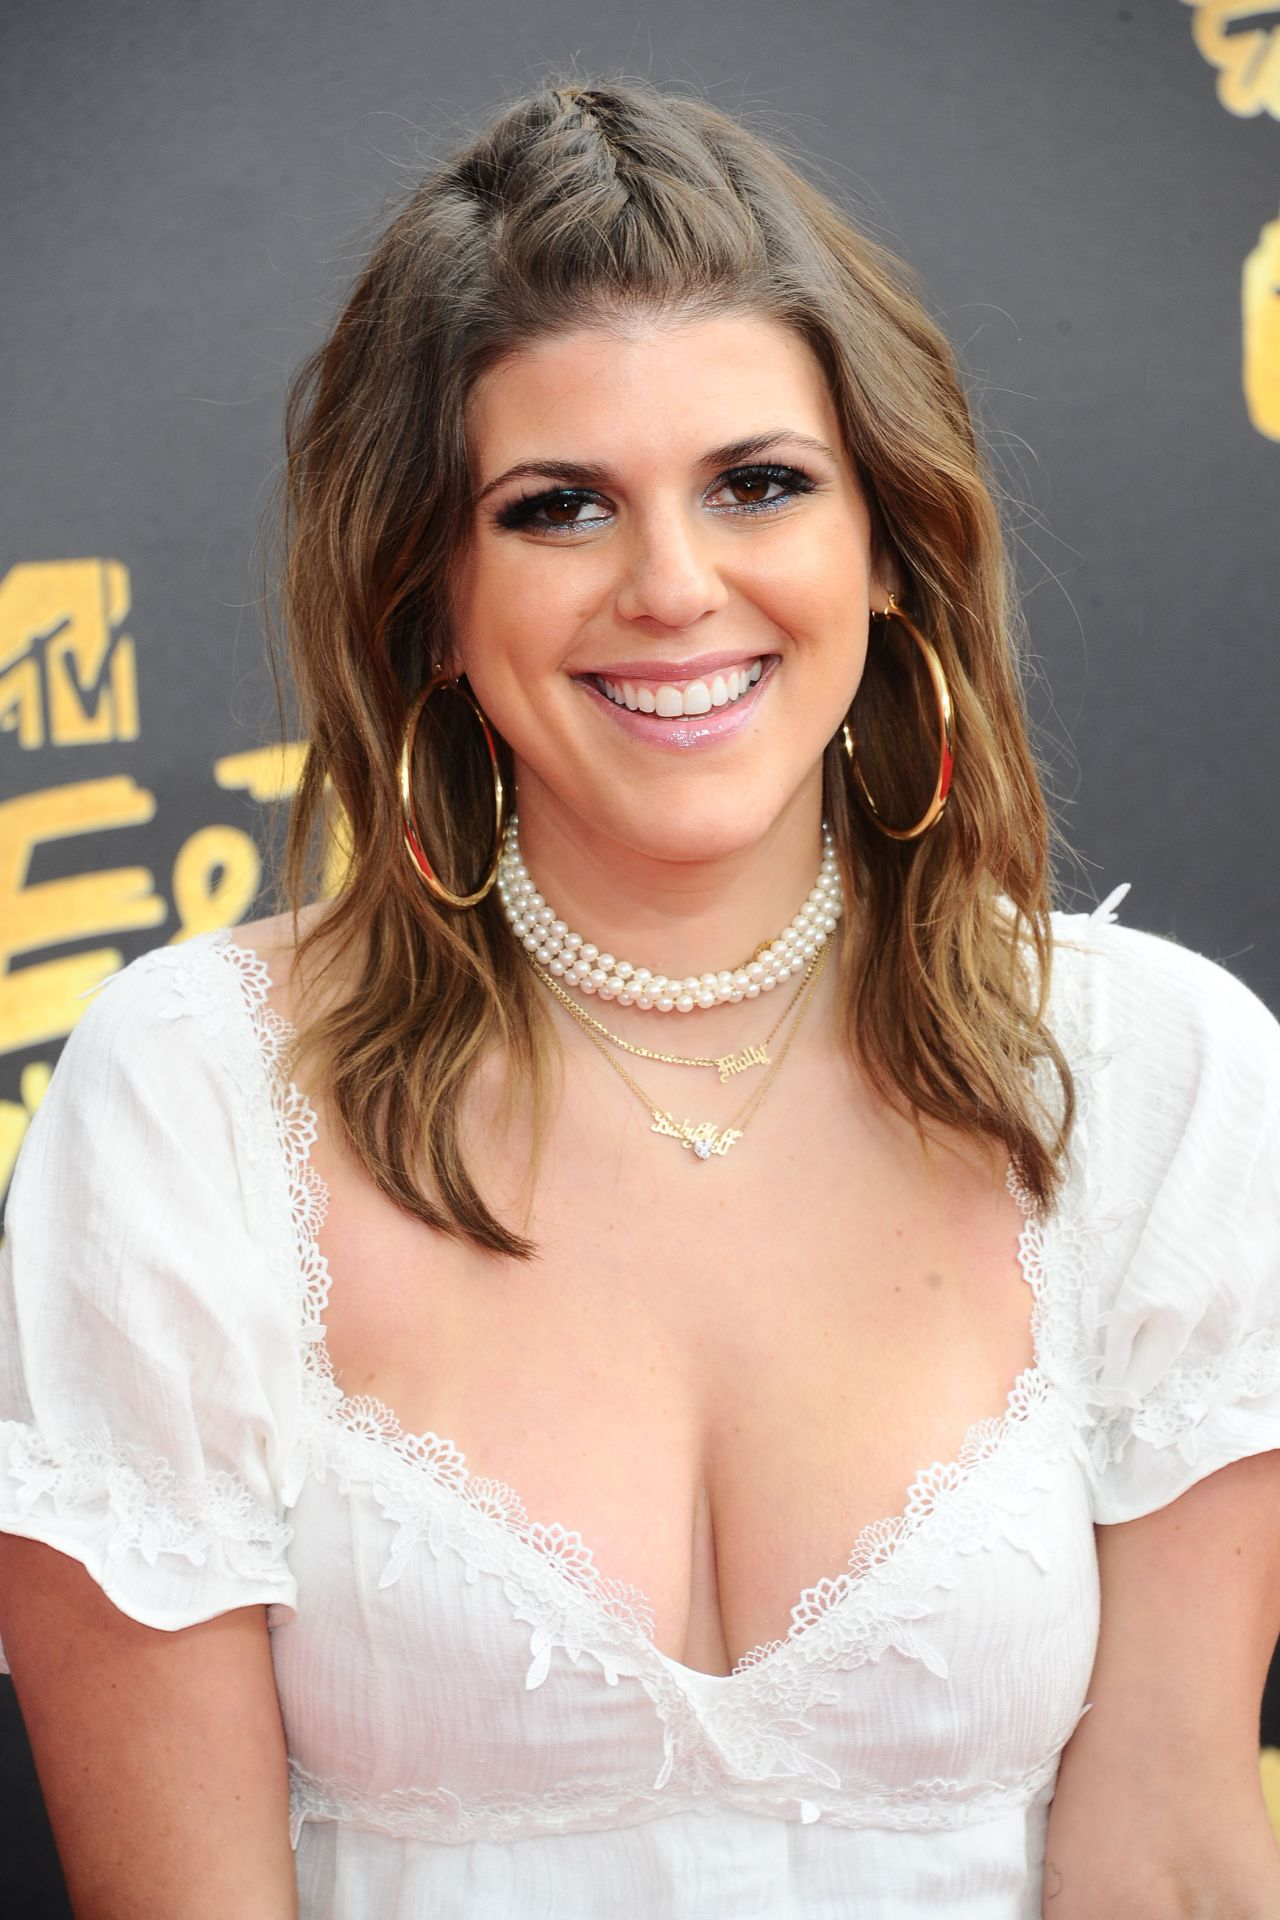 Molly Tarlov nude (33 photos), hot Selfie, Twitter, swimsuit 2015